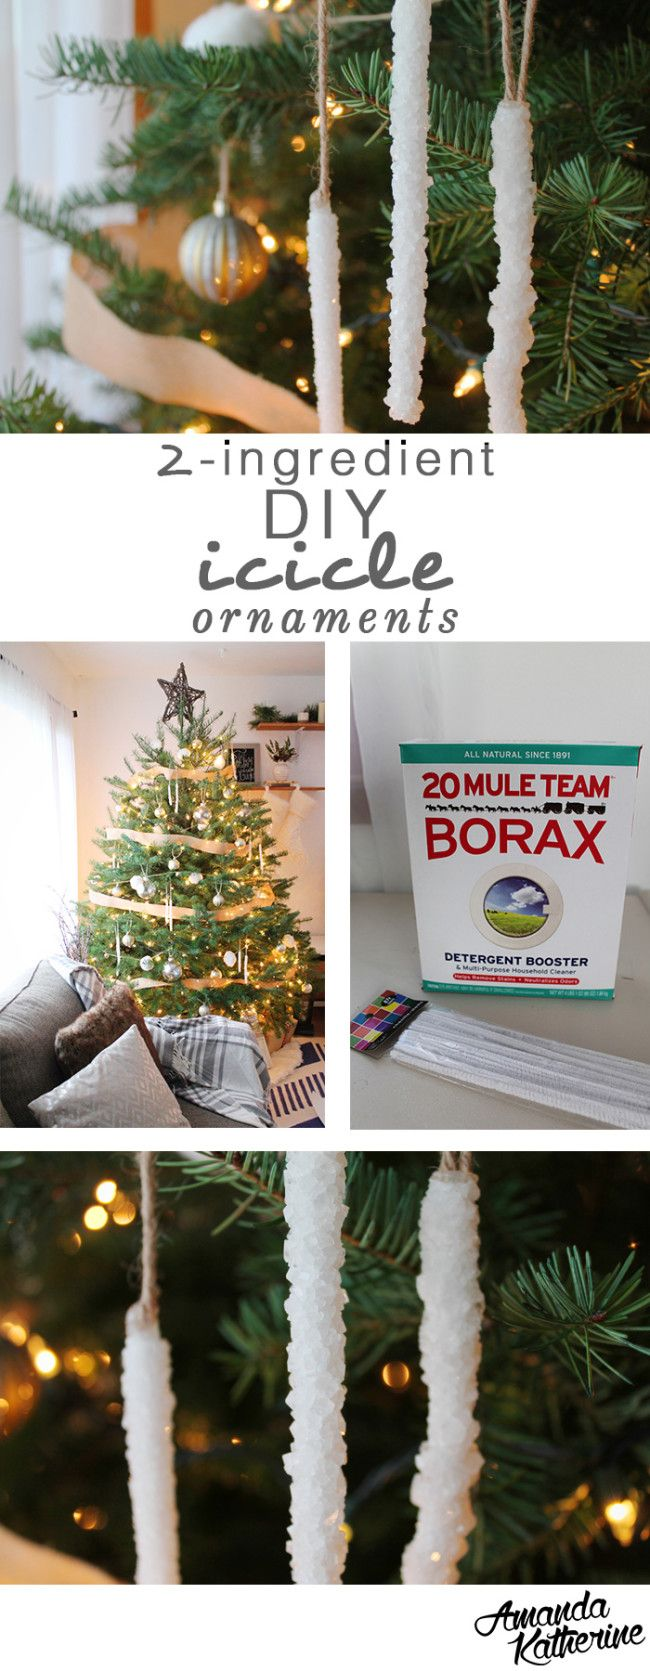 Ice cycle ornaments - Diy Icicle Ornaments